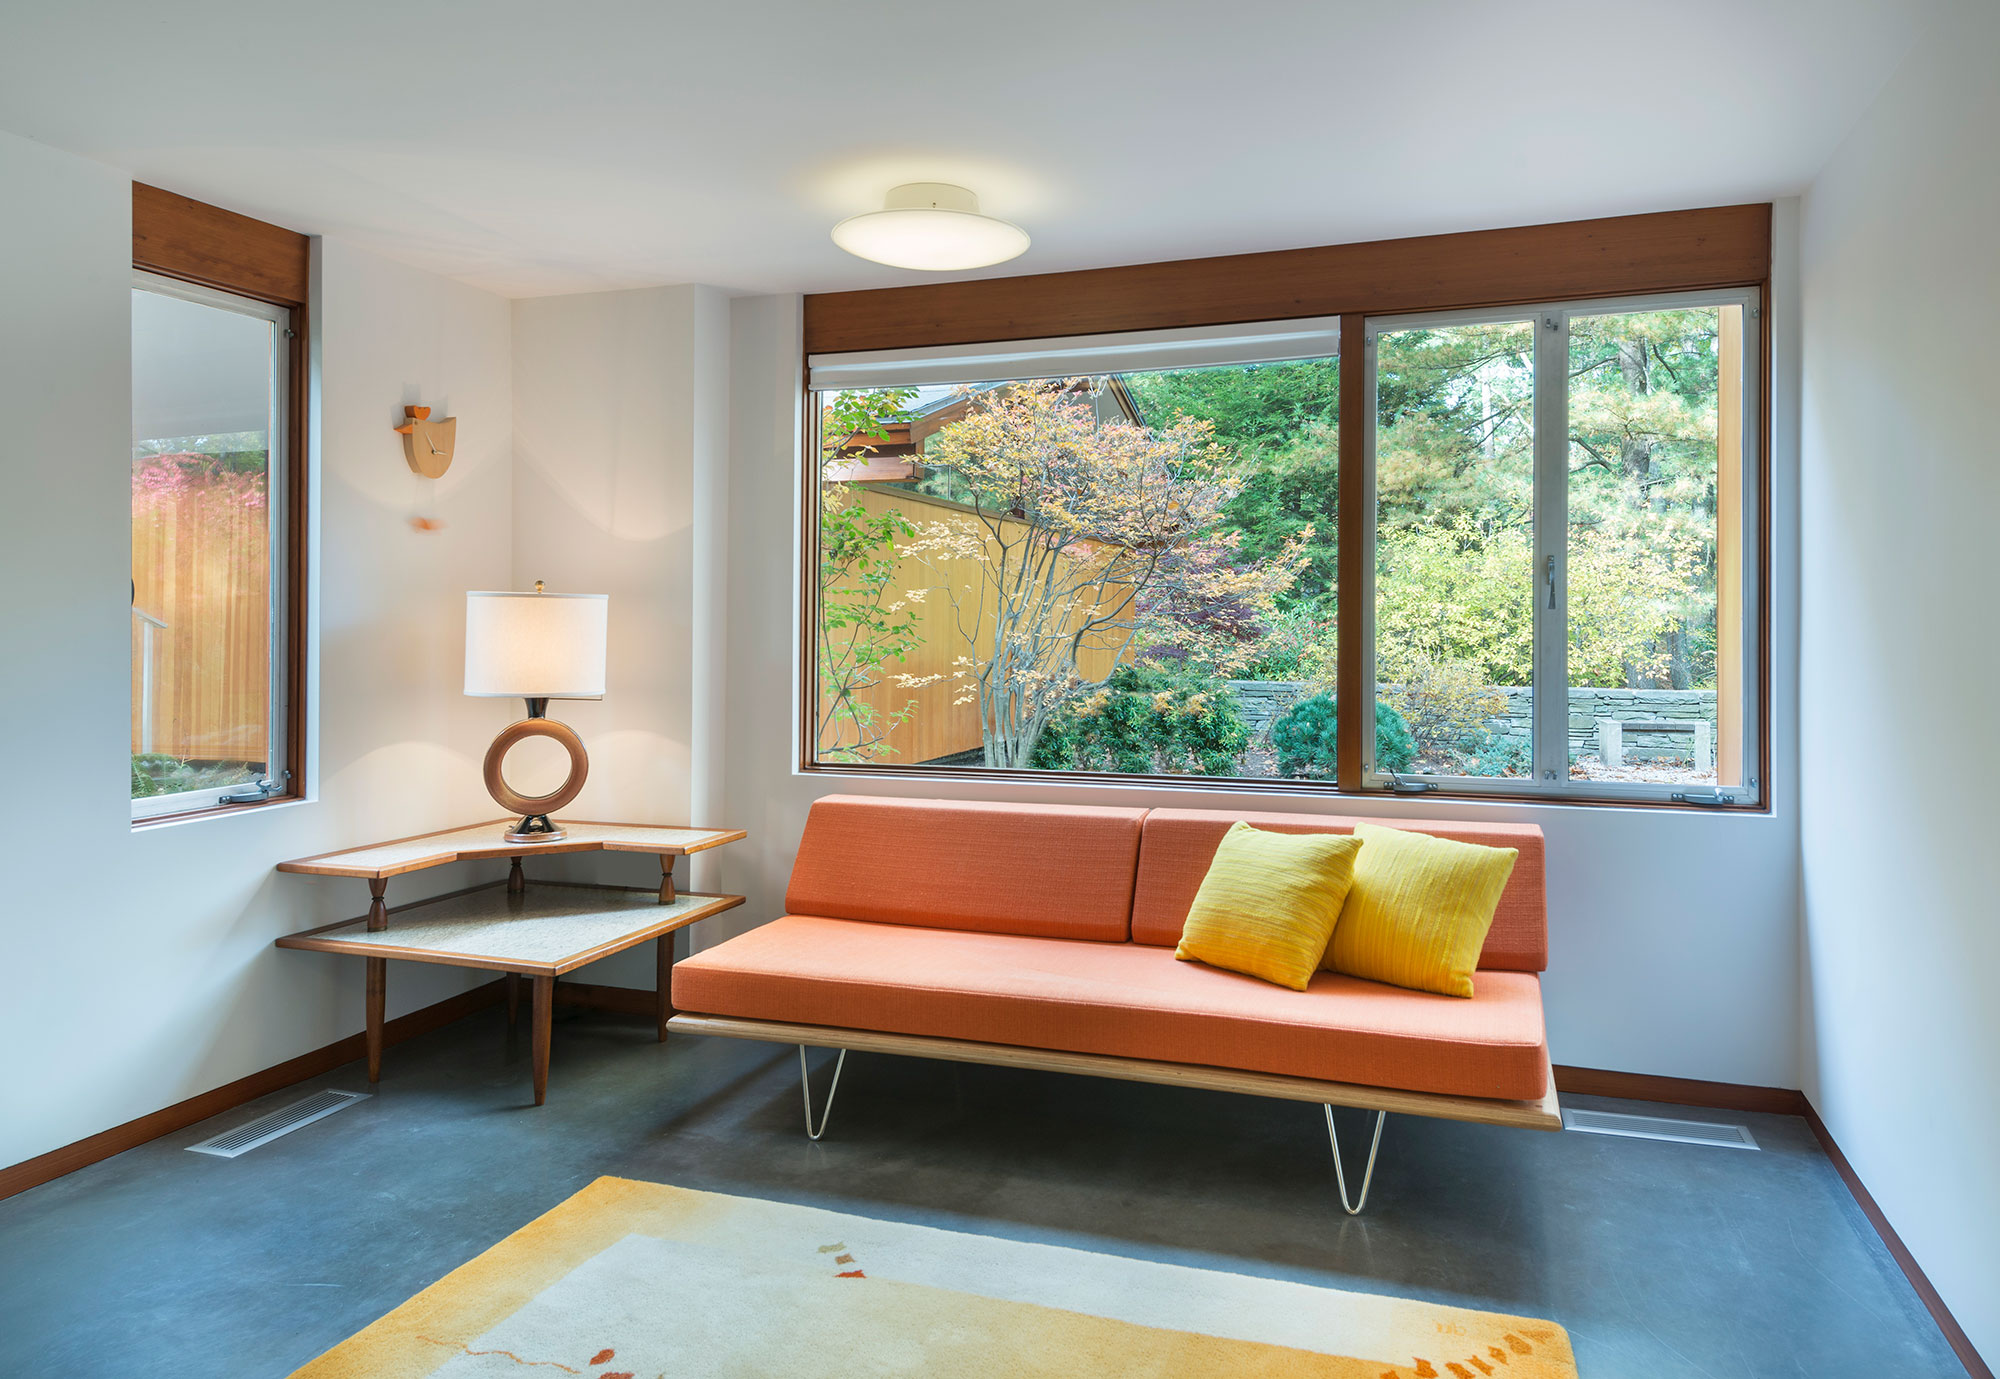 mid-century modern living room interior with sofa